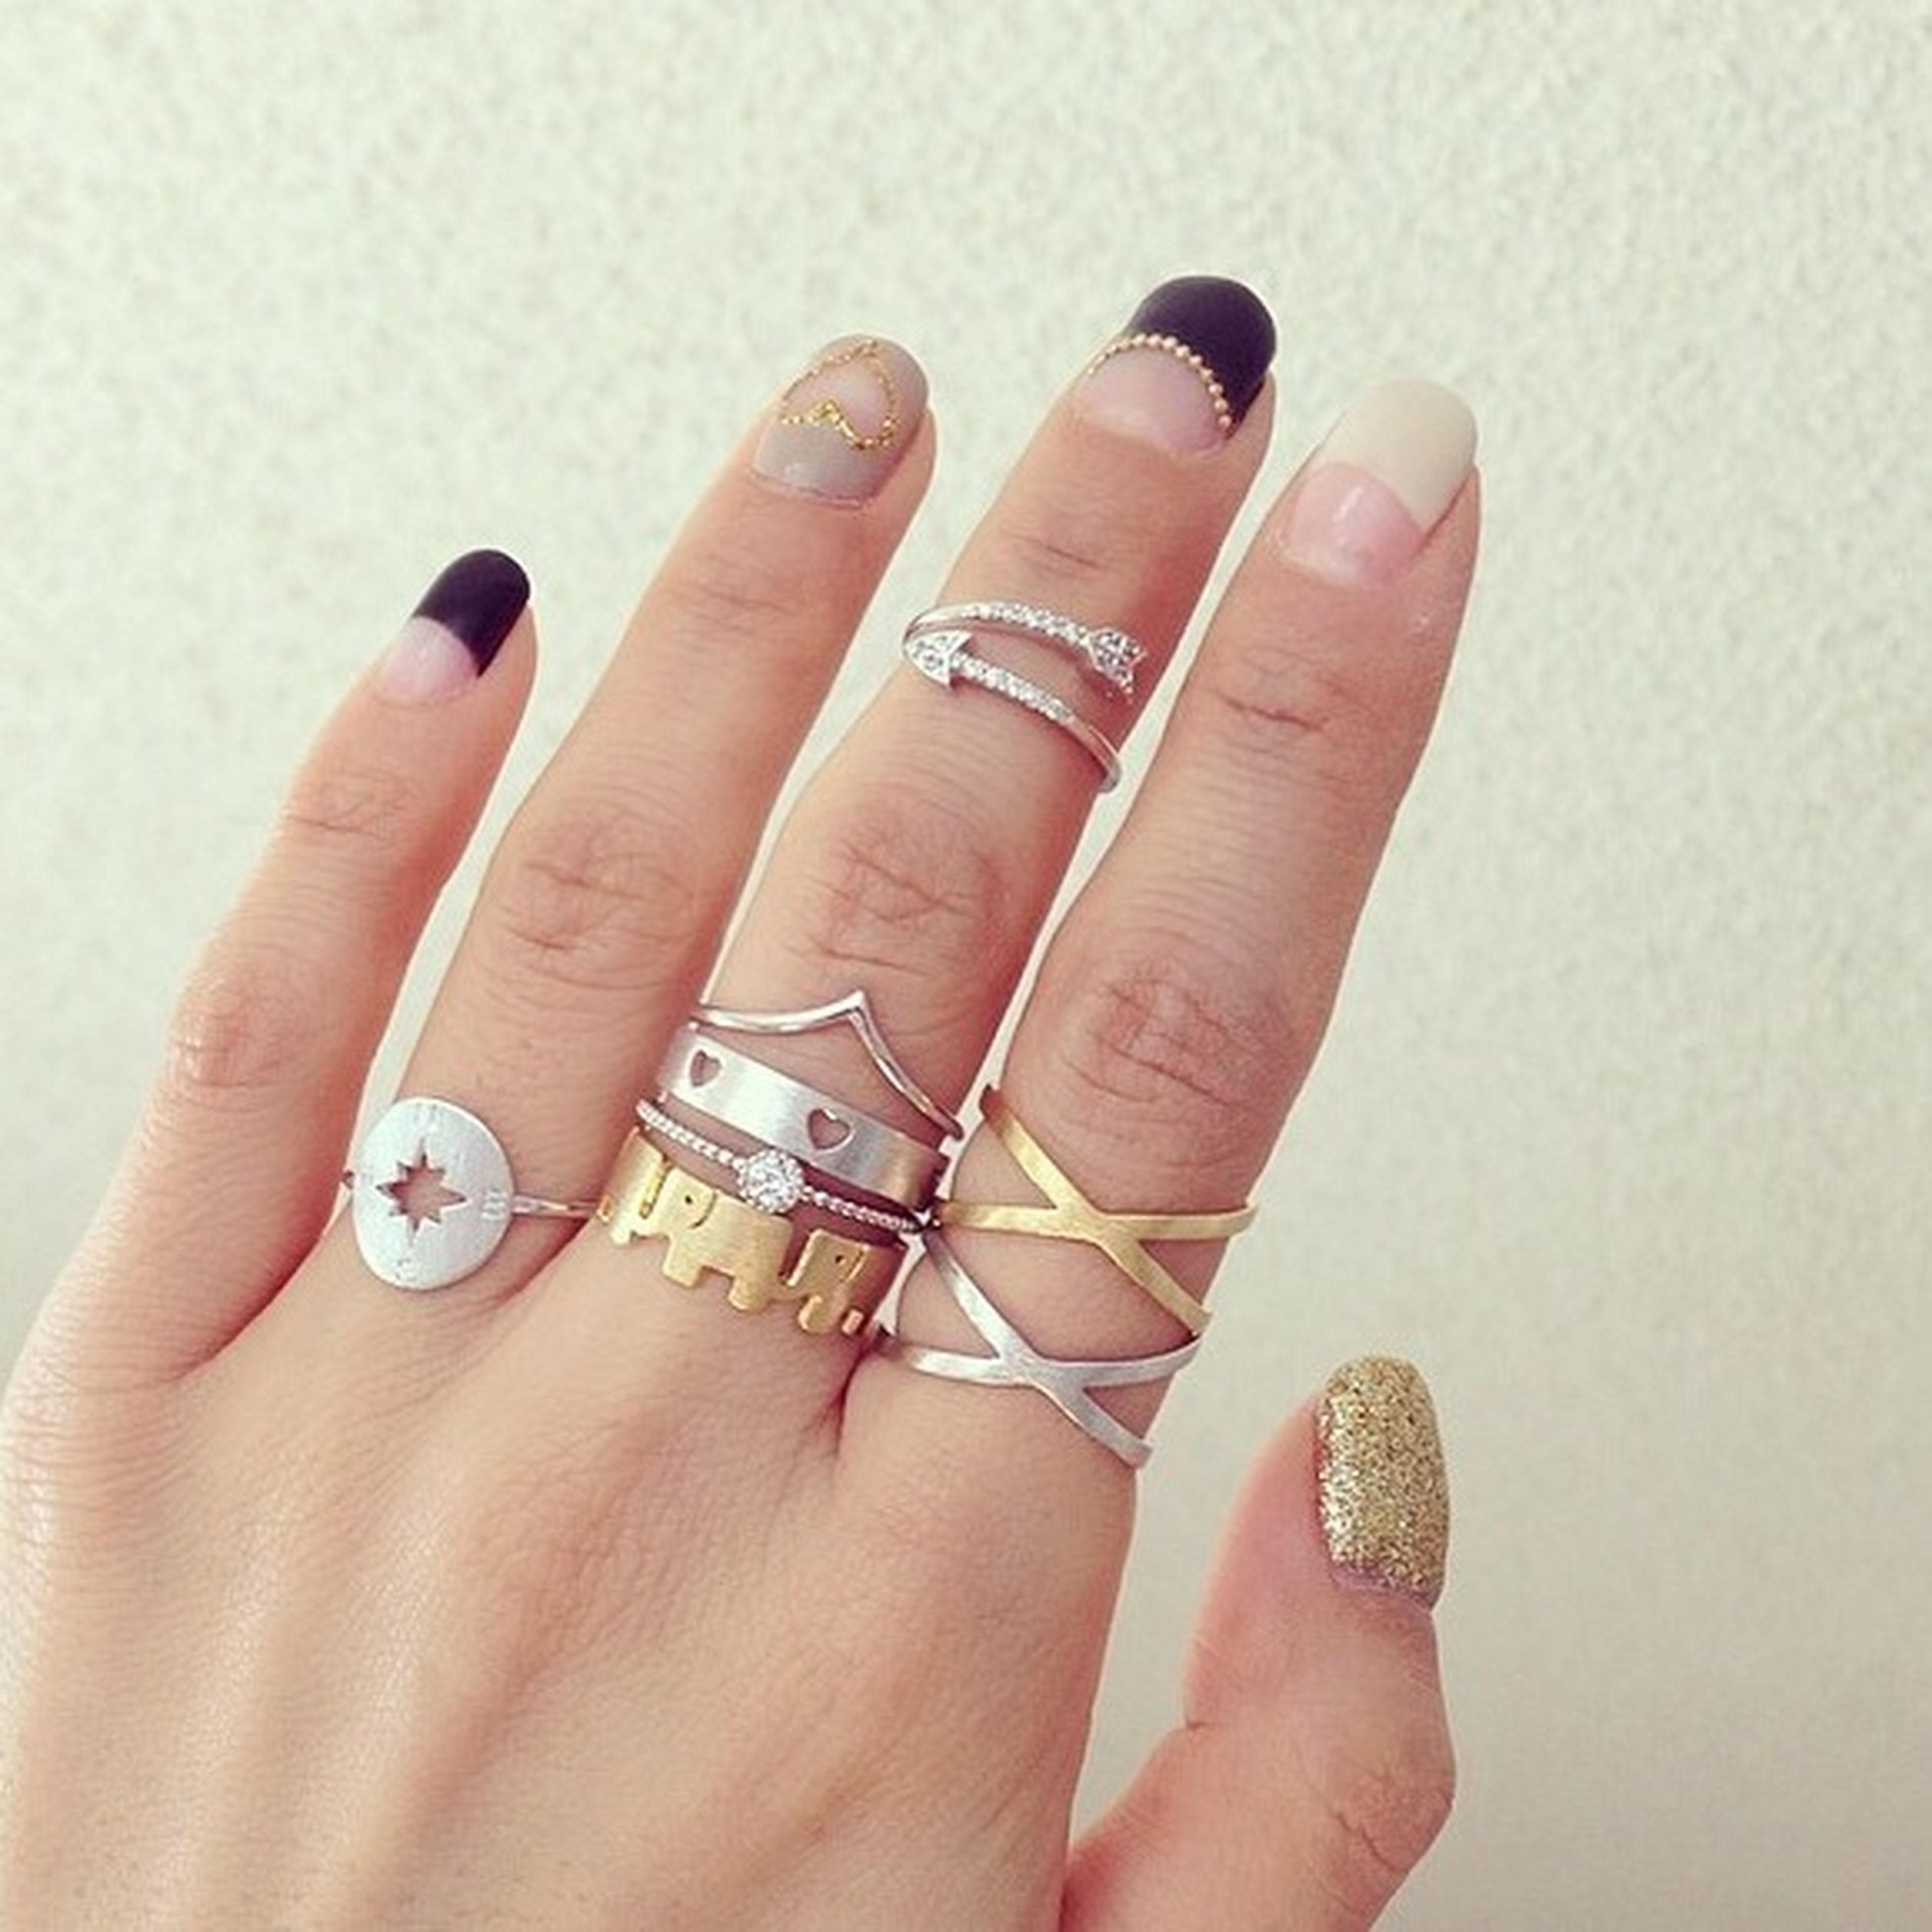 person, part of, holding, human finger, personal perspective, indoors, nail polish, cropped, close-up, ring, studio shot, lifestyles, unrecognizable person, showing, white background, palm